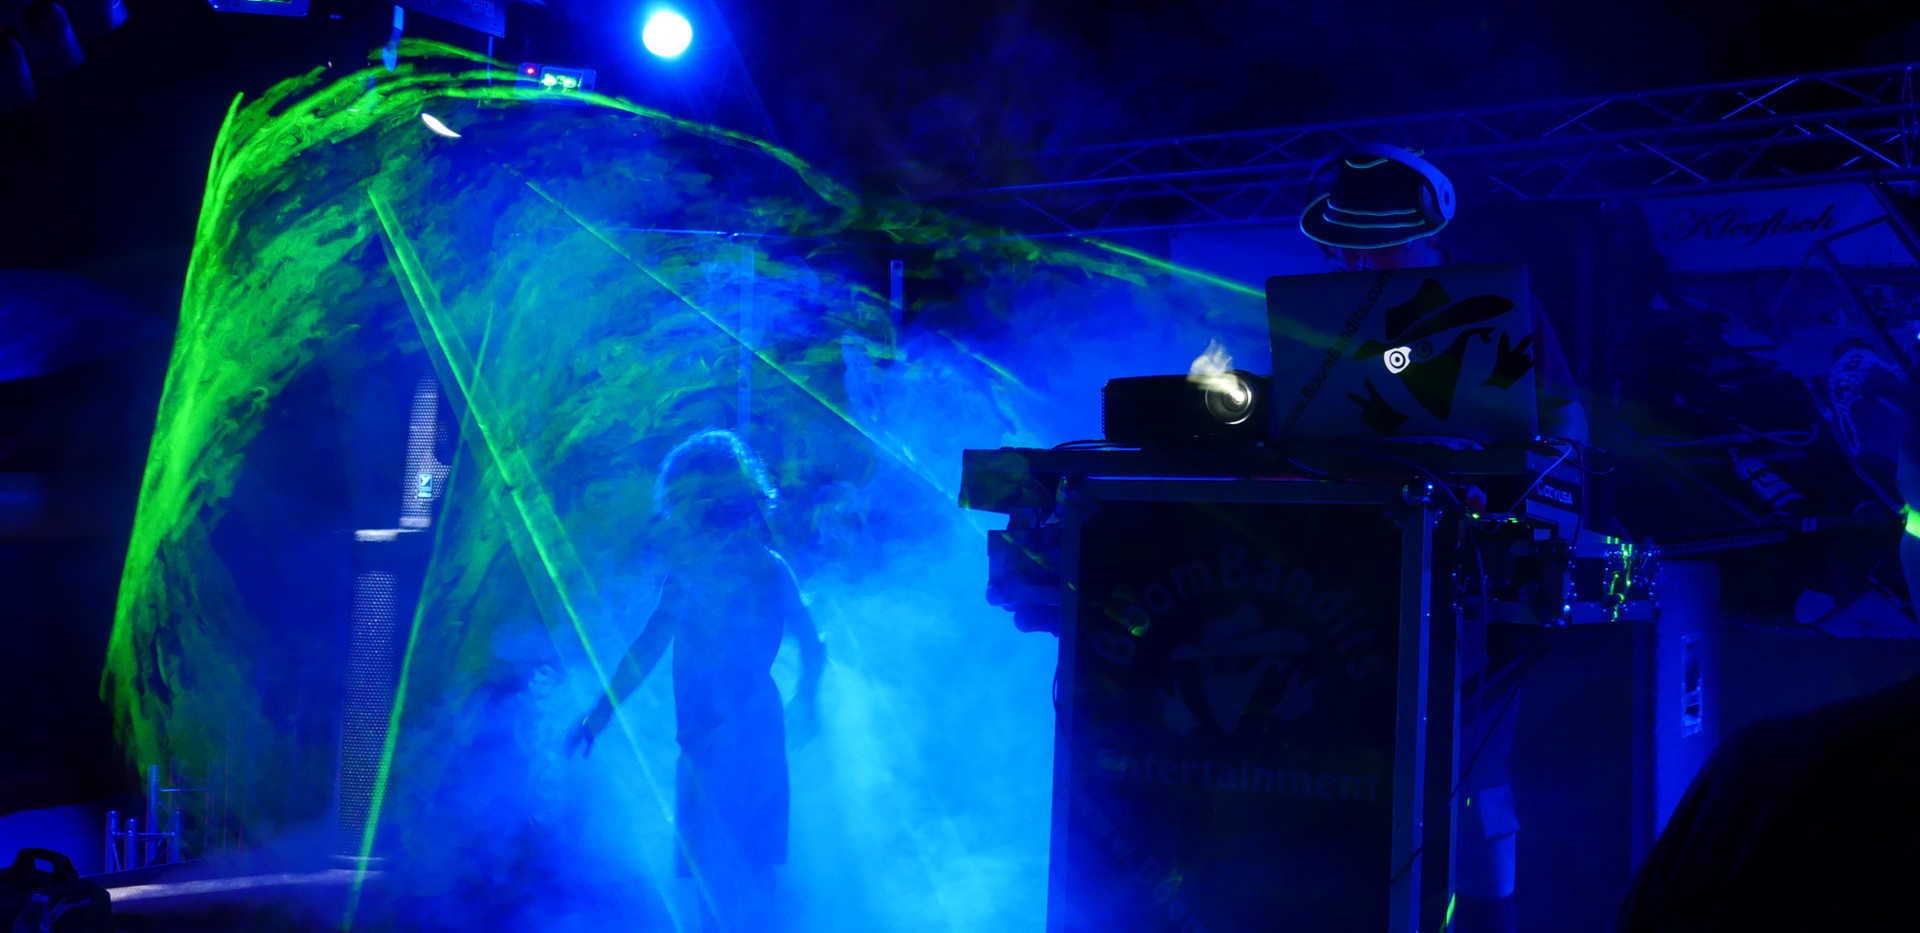 Laser Effects